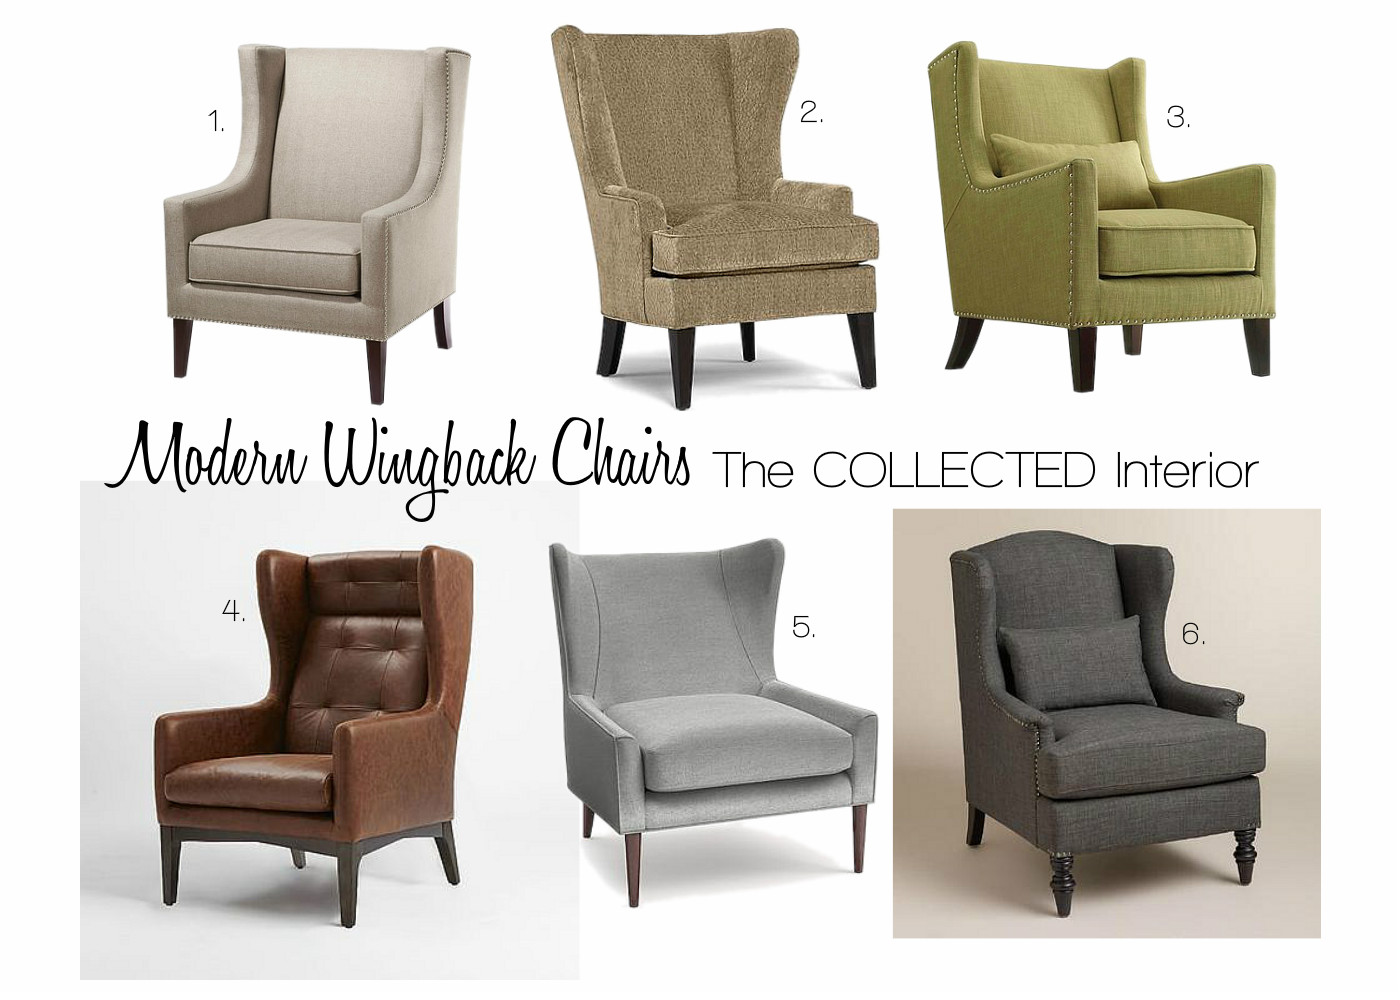 Cool Wingback Chairs For Sale - stevieawardsjapan